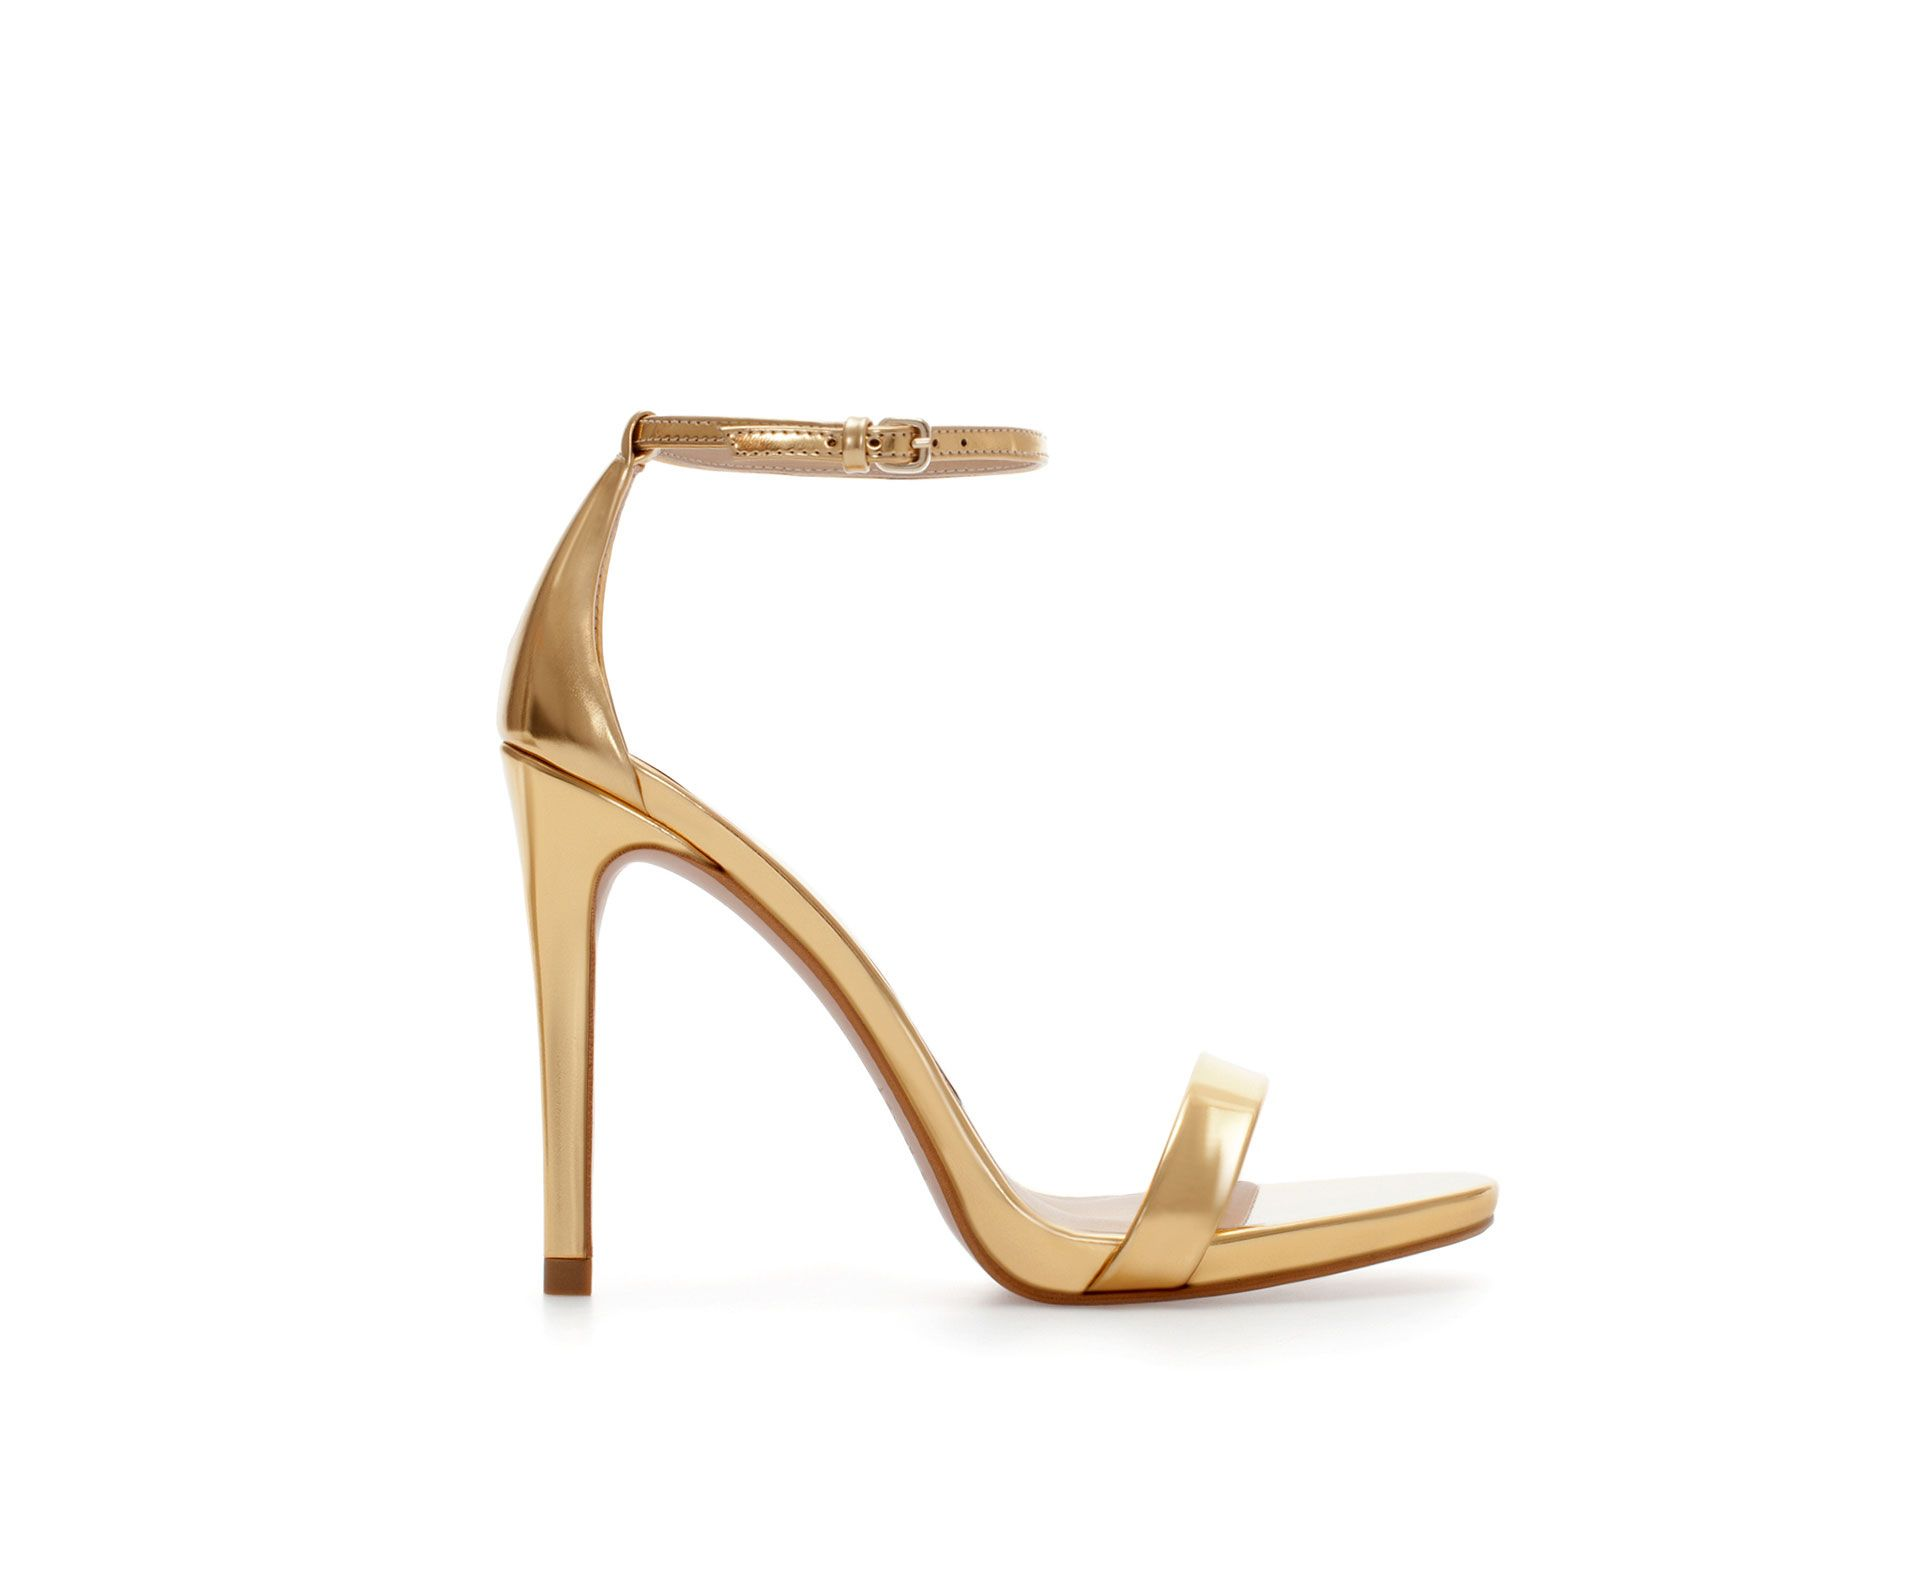 Gold high heel strappy sandals from Zara´s new collection.